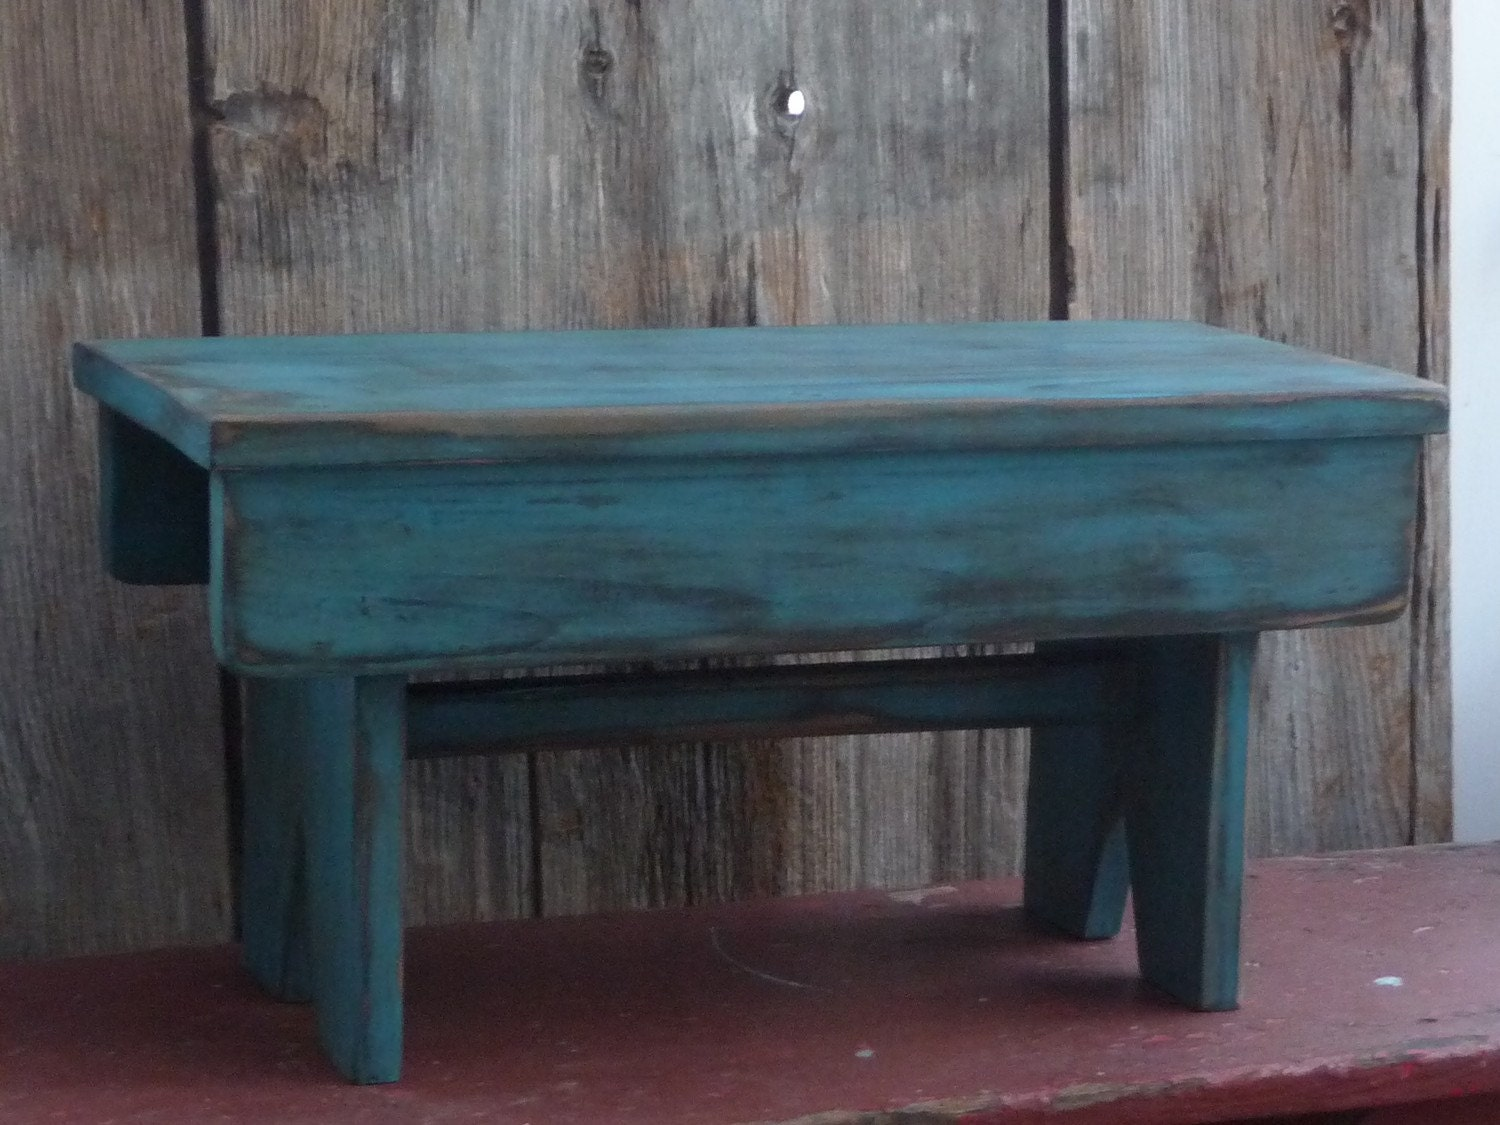 Primitive Rustic Folk Art Bench In Old Blue Paint